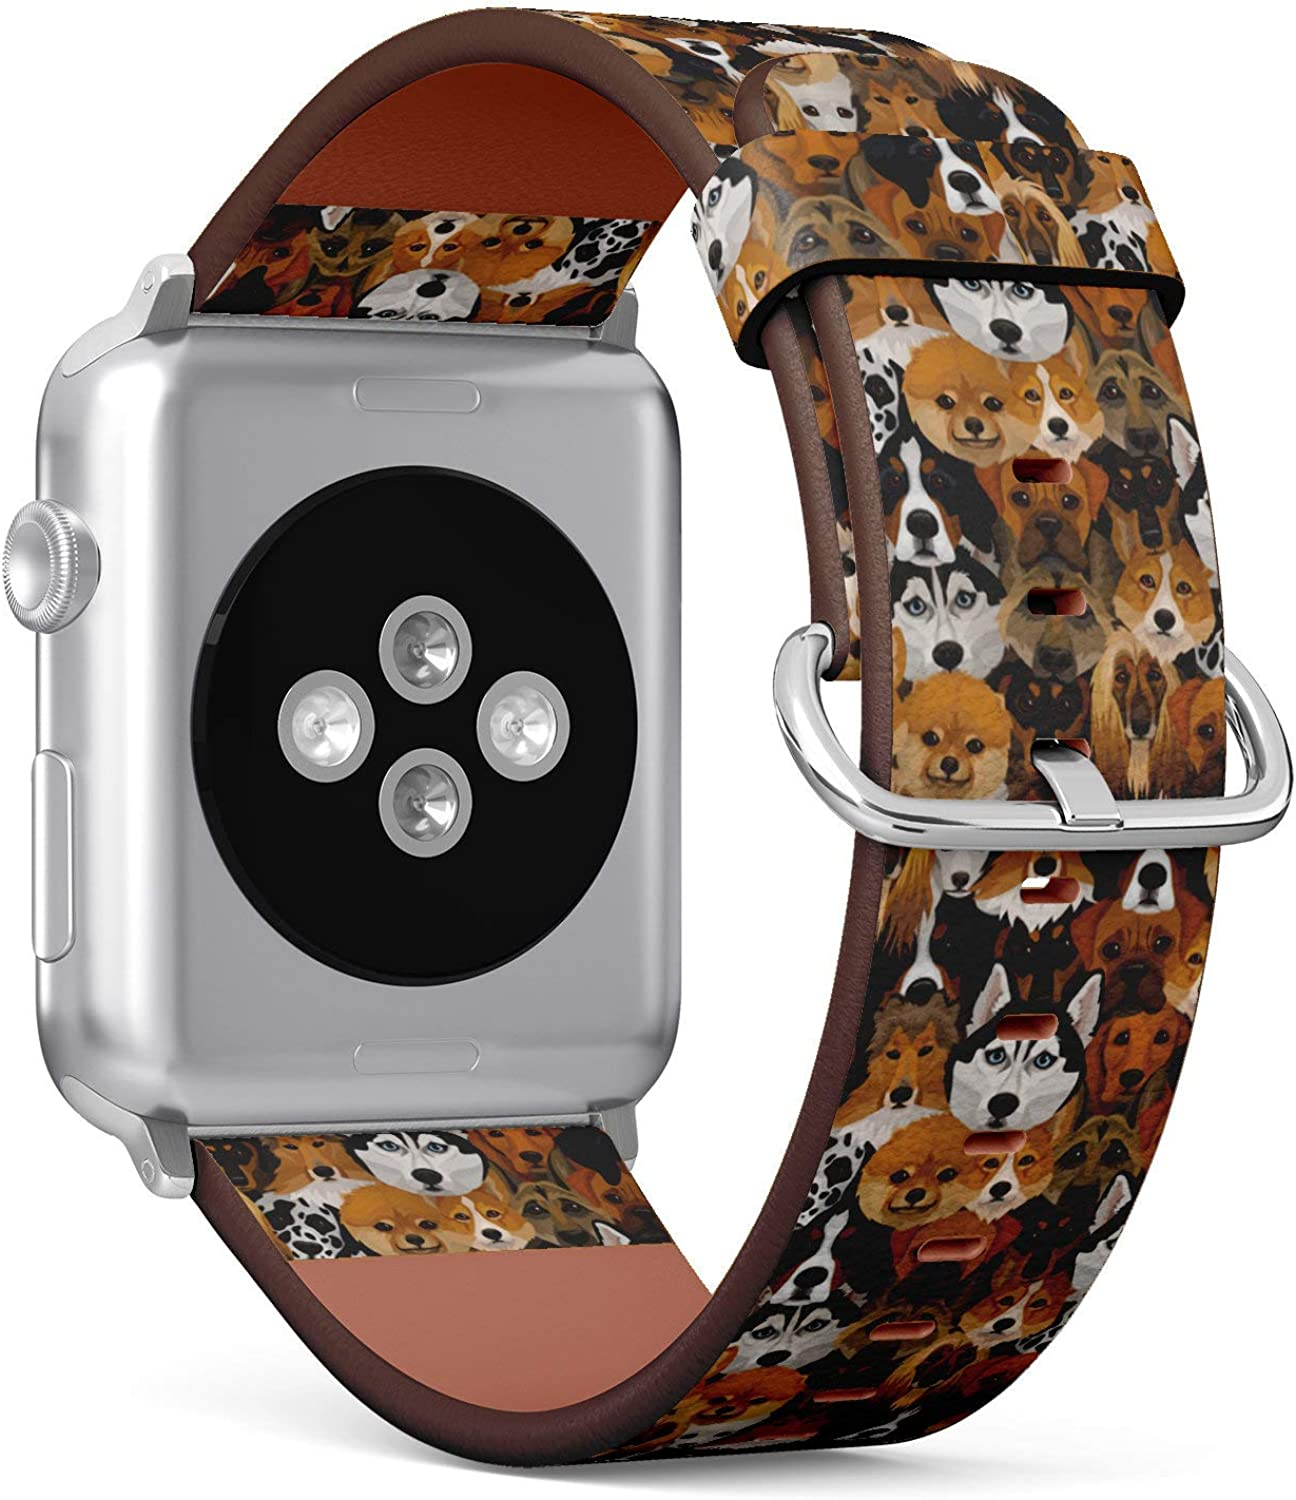 (Dogs Different Breeds Pattern) Patterned Leather Wristband Strap Compatible with Apple Watch Series 4/3/2/1 gen,Replacement of iWatch 42mm / 44mm Bands